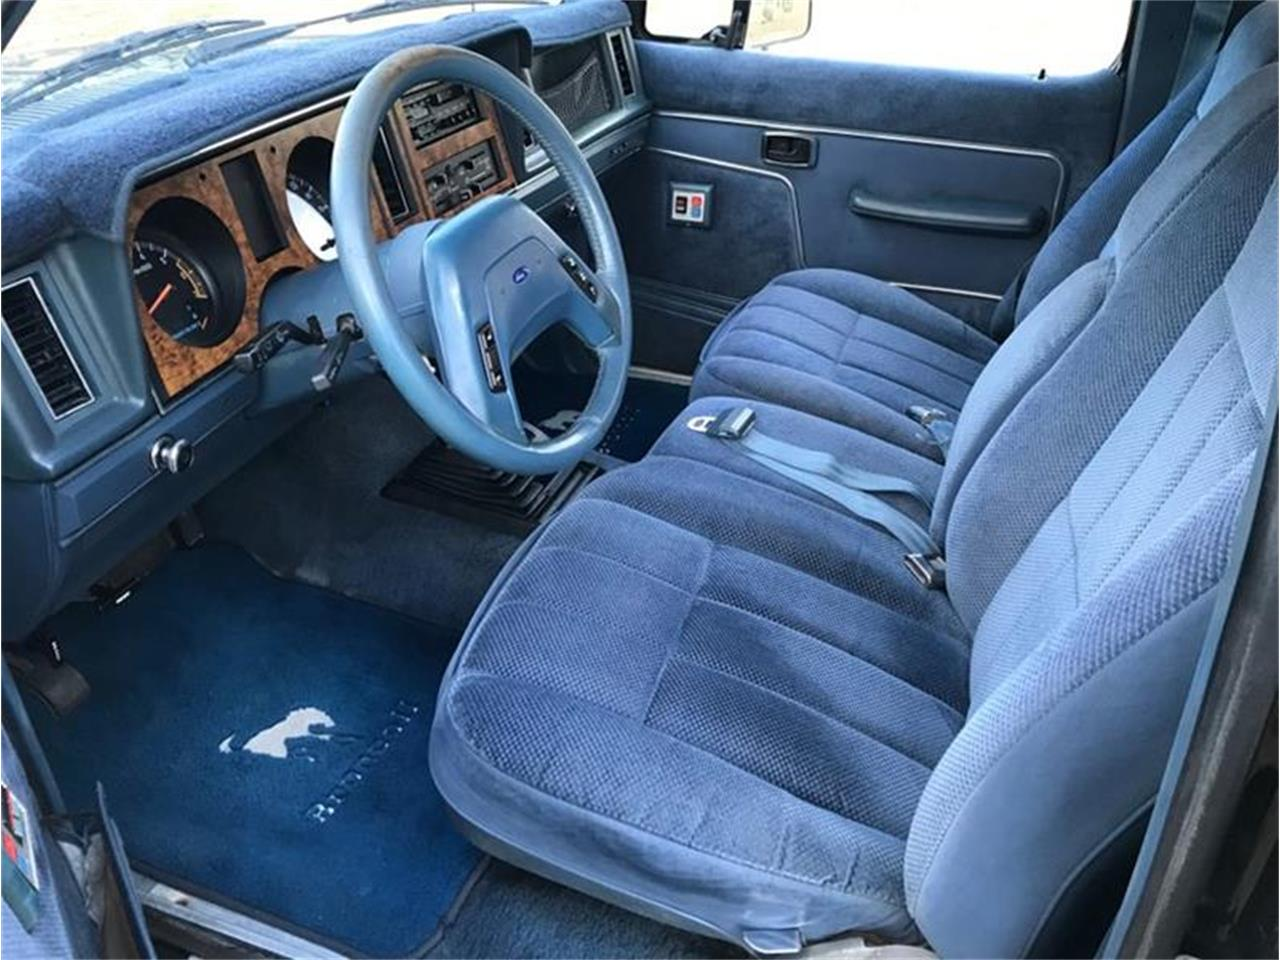 1988 Ford Bronco II (CC-1197279) for sale in Fredericksburg, Texas